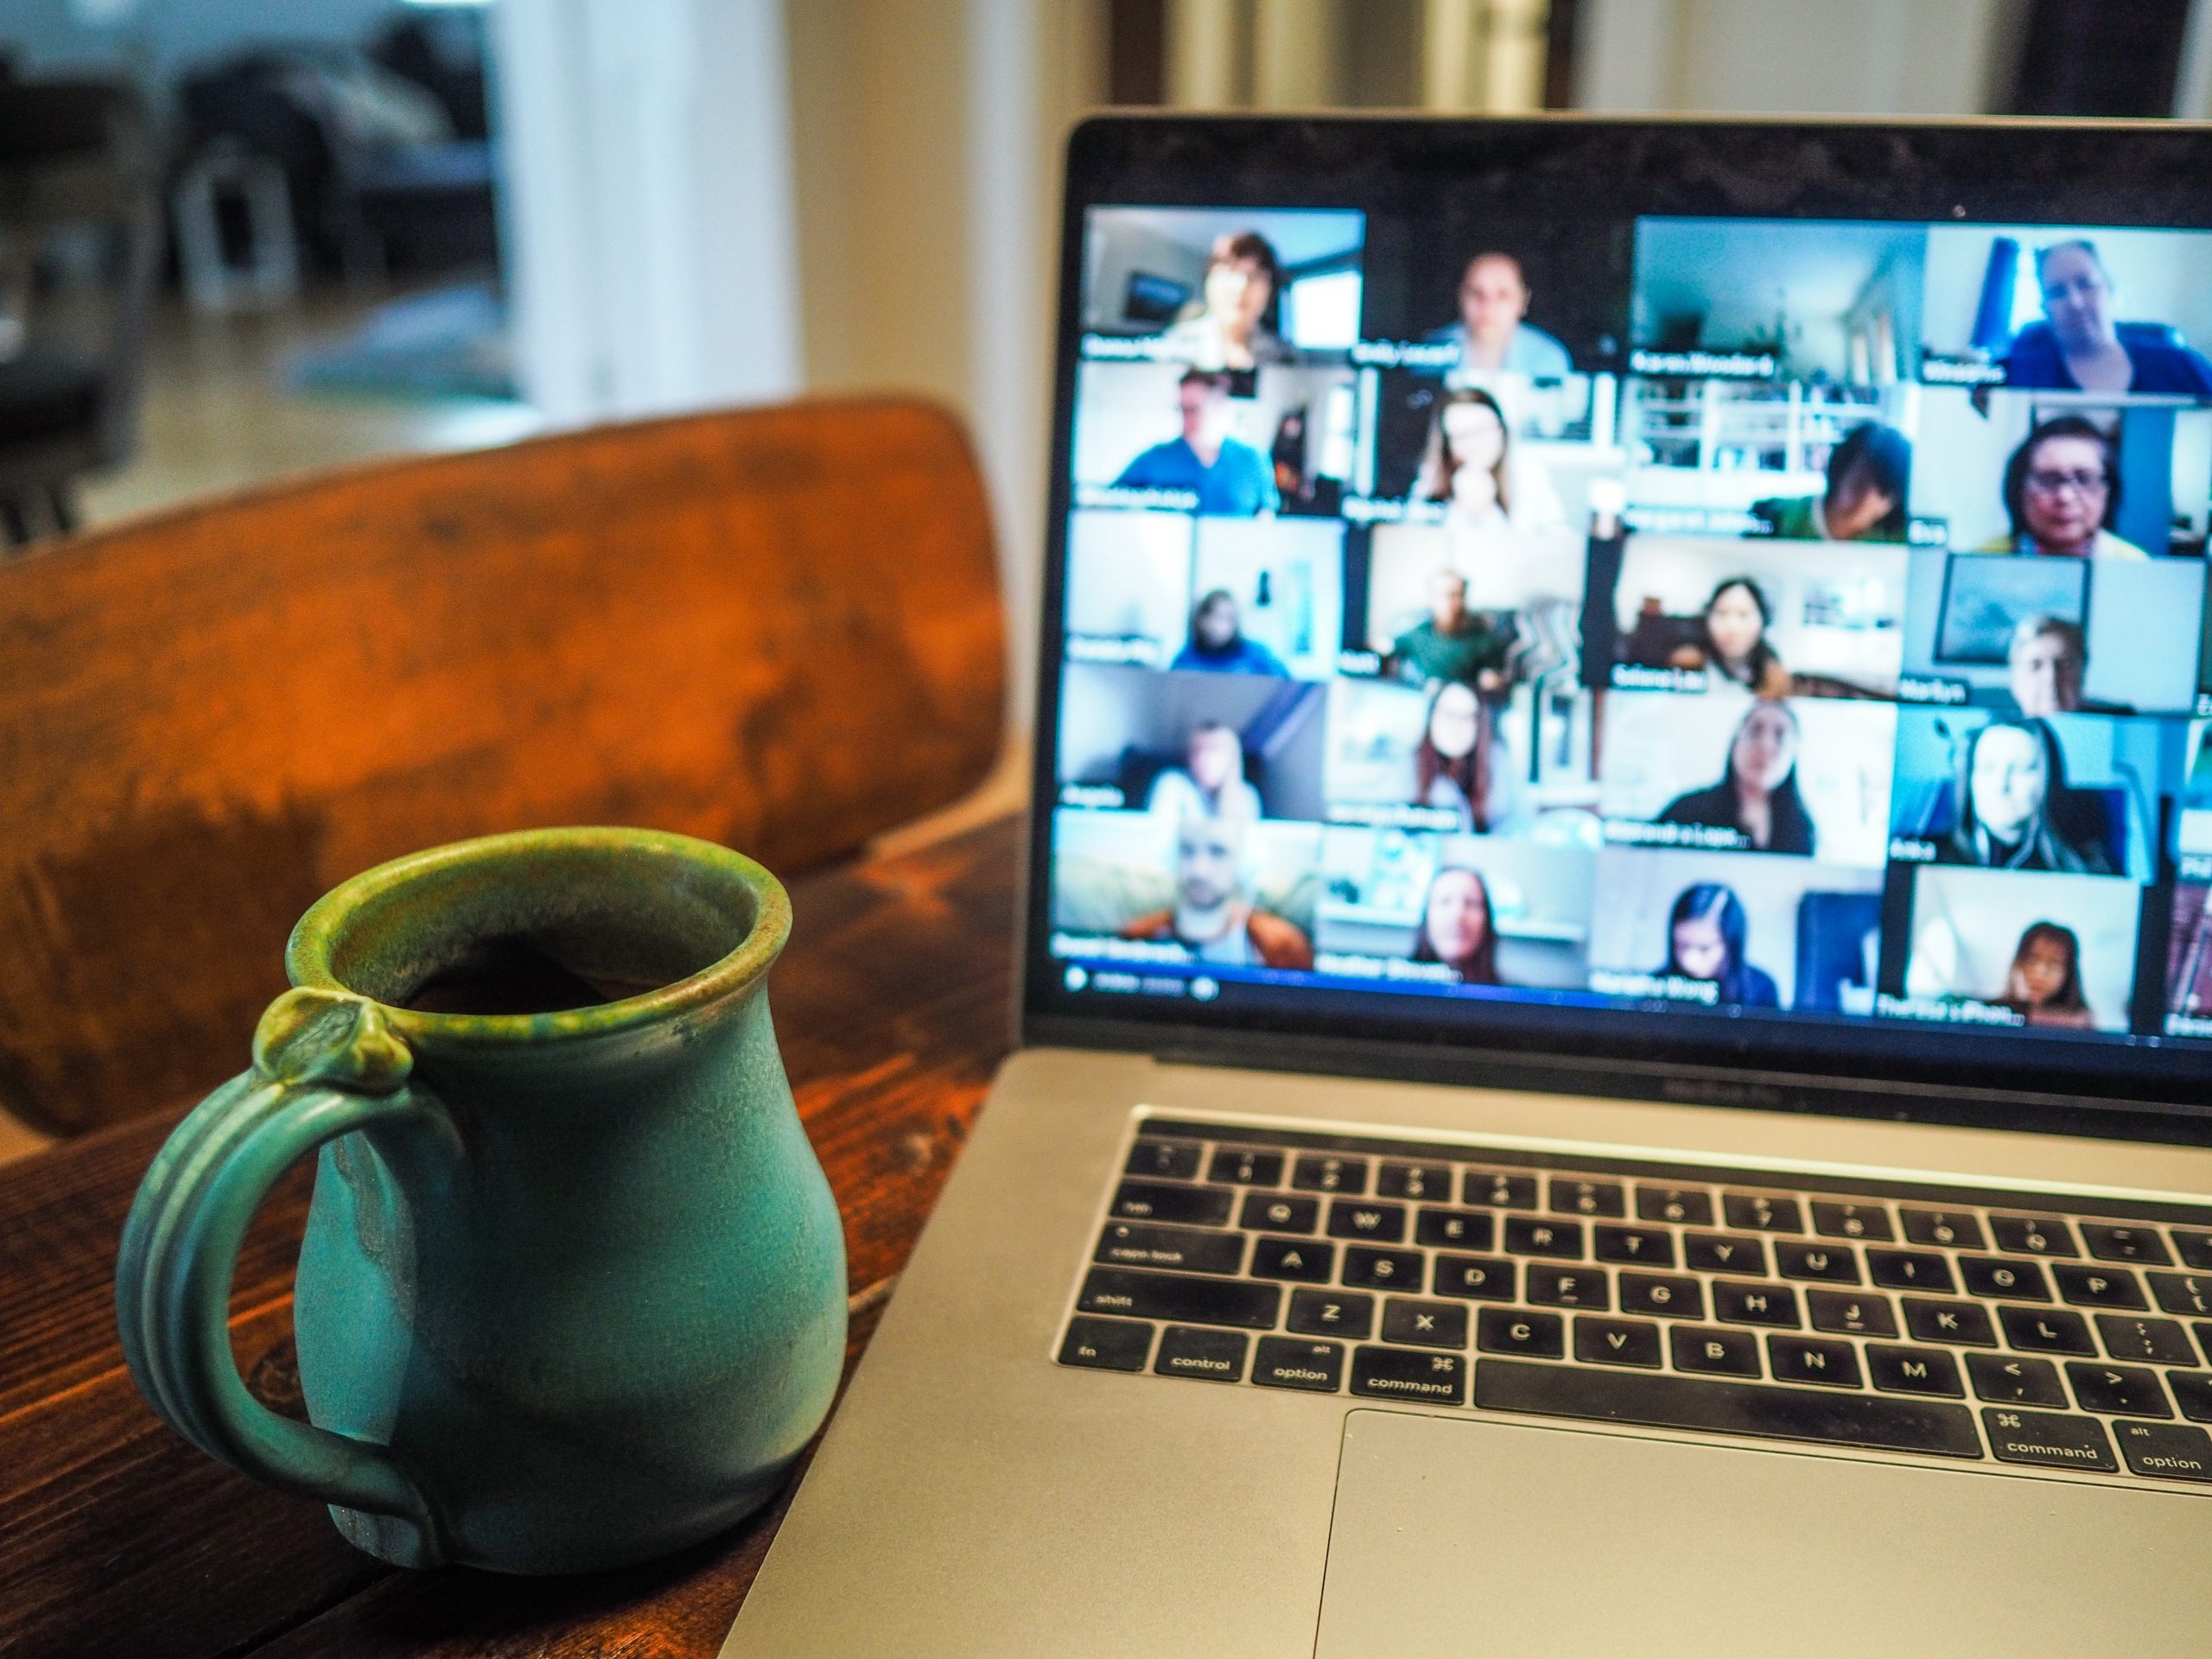 Turquoise mug next to a laptop with a large video call on screen